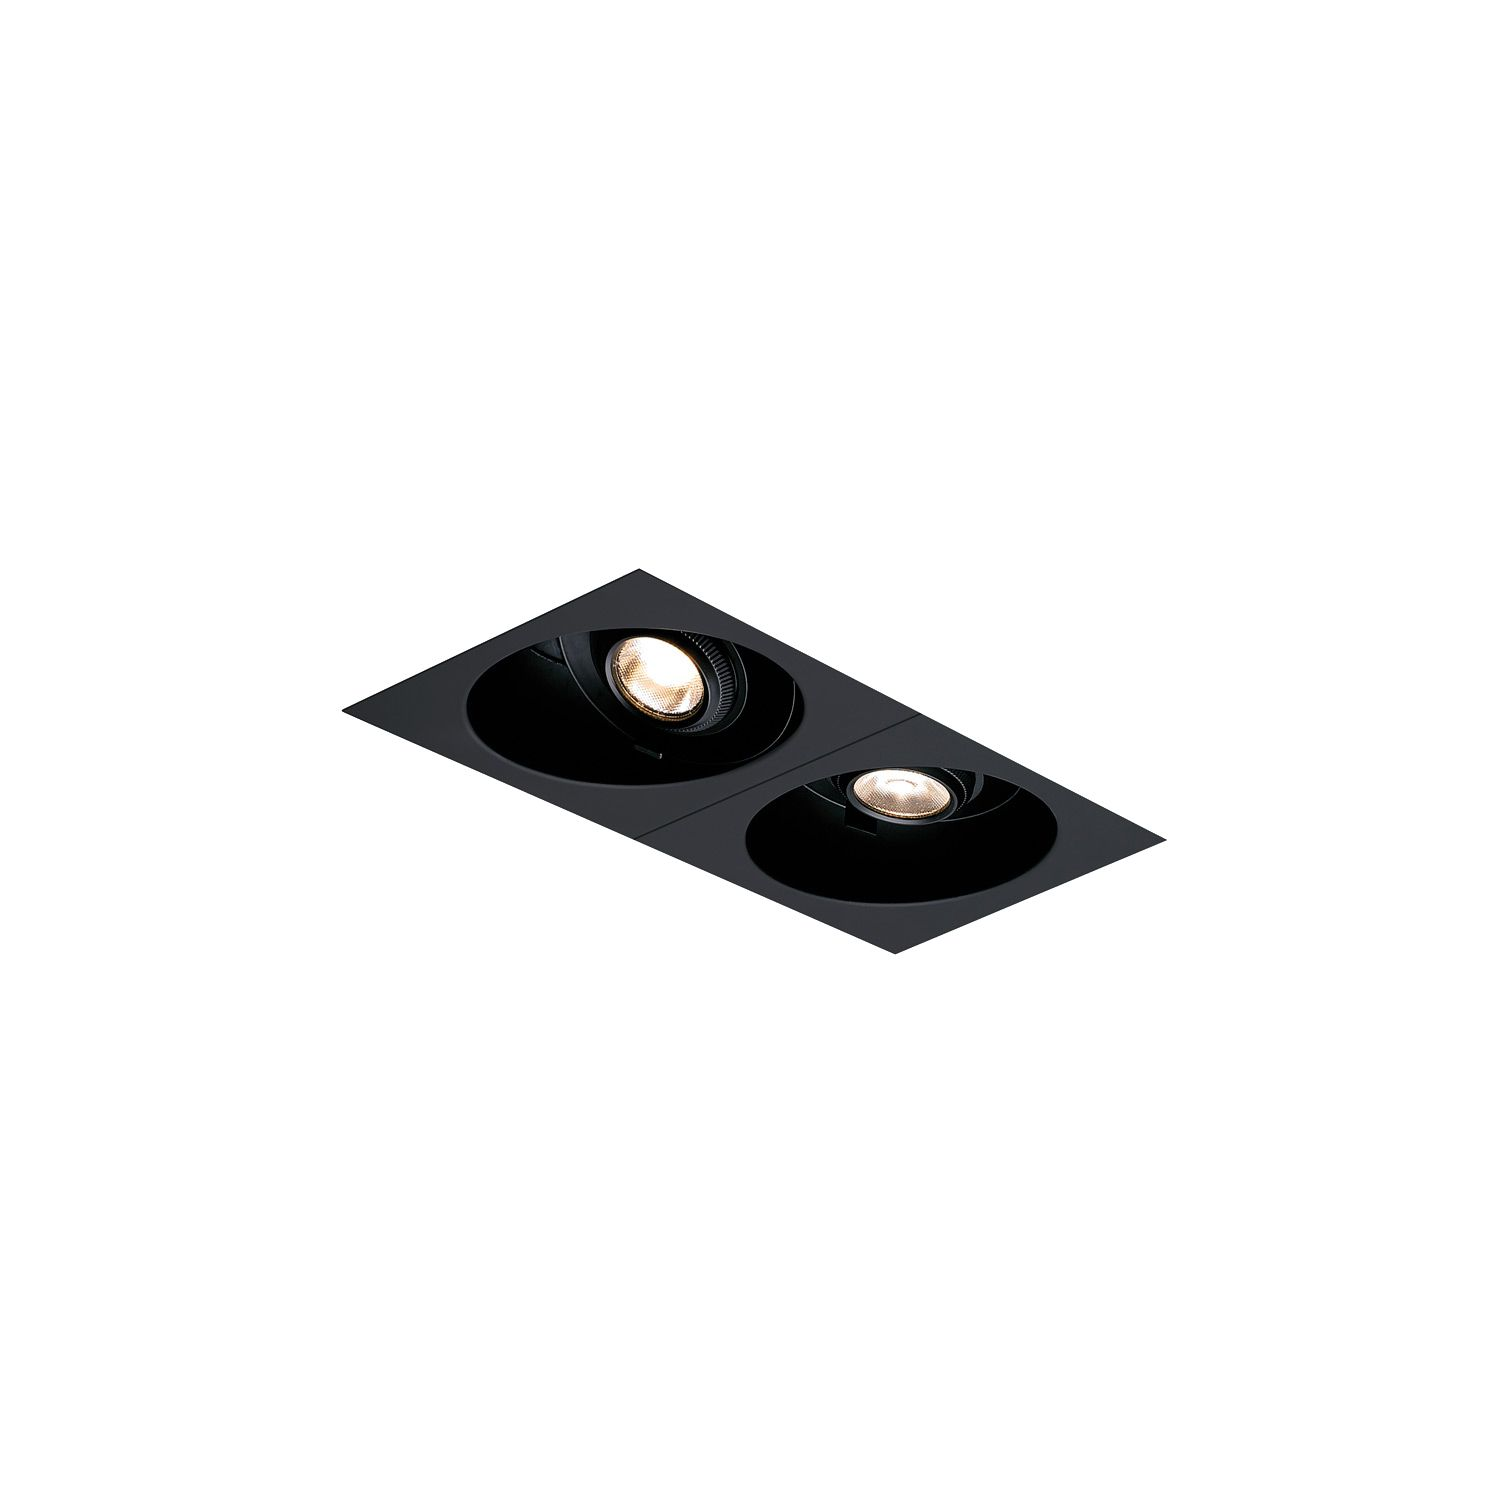 Element Multiples Open - EMO 12 - Double LED Recessed Lighting ...